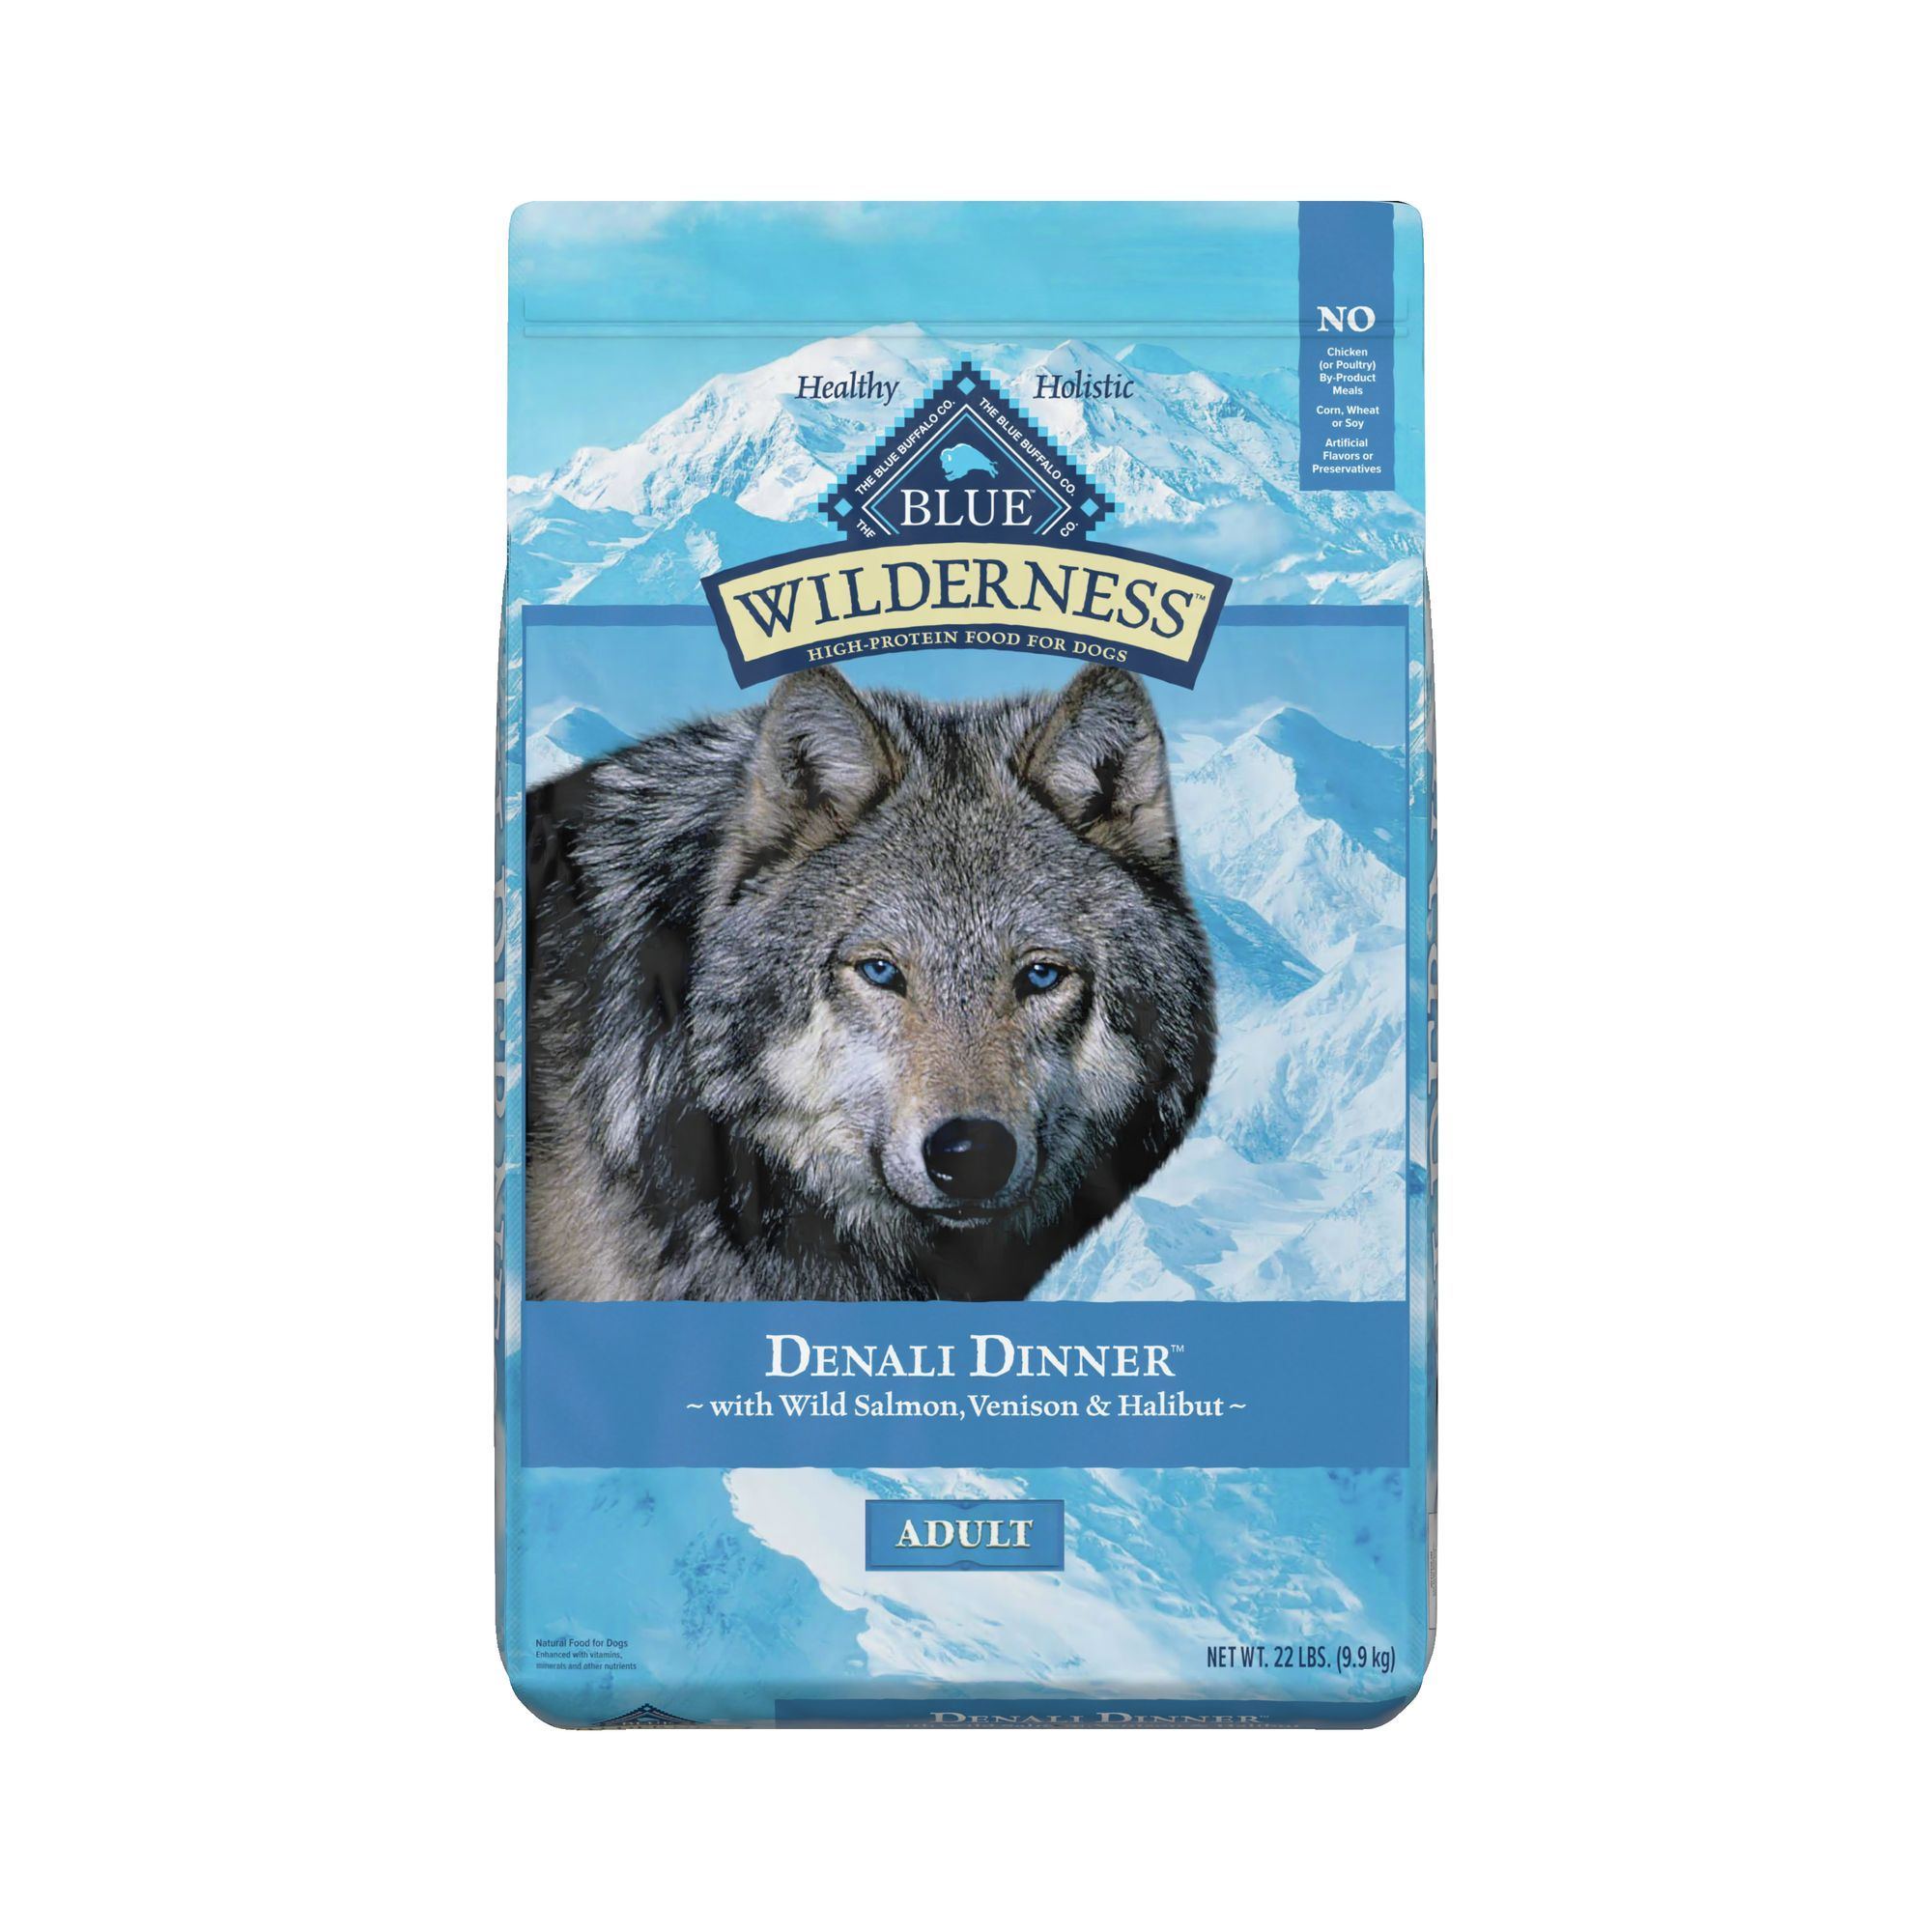 wilderness denali dinner dog food